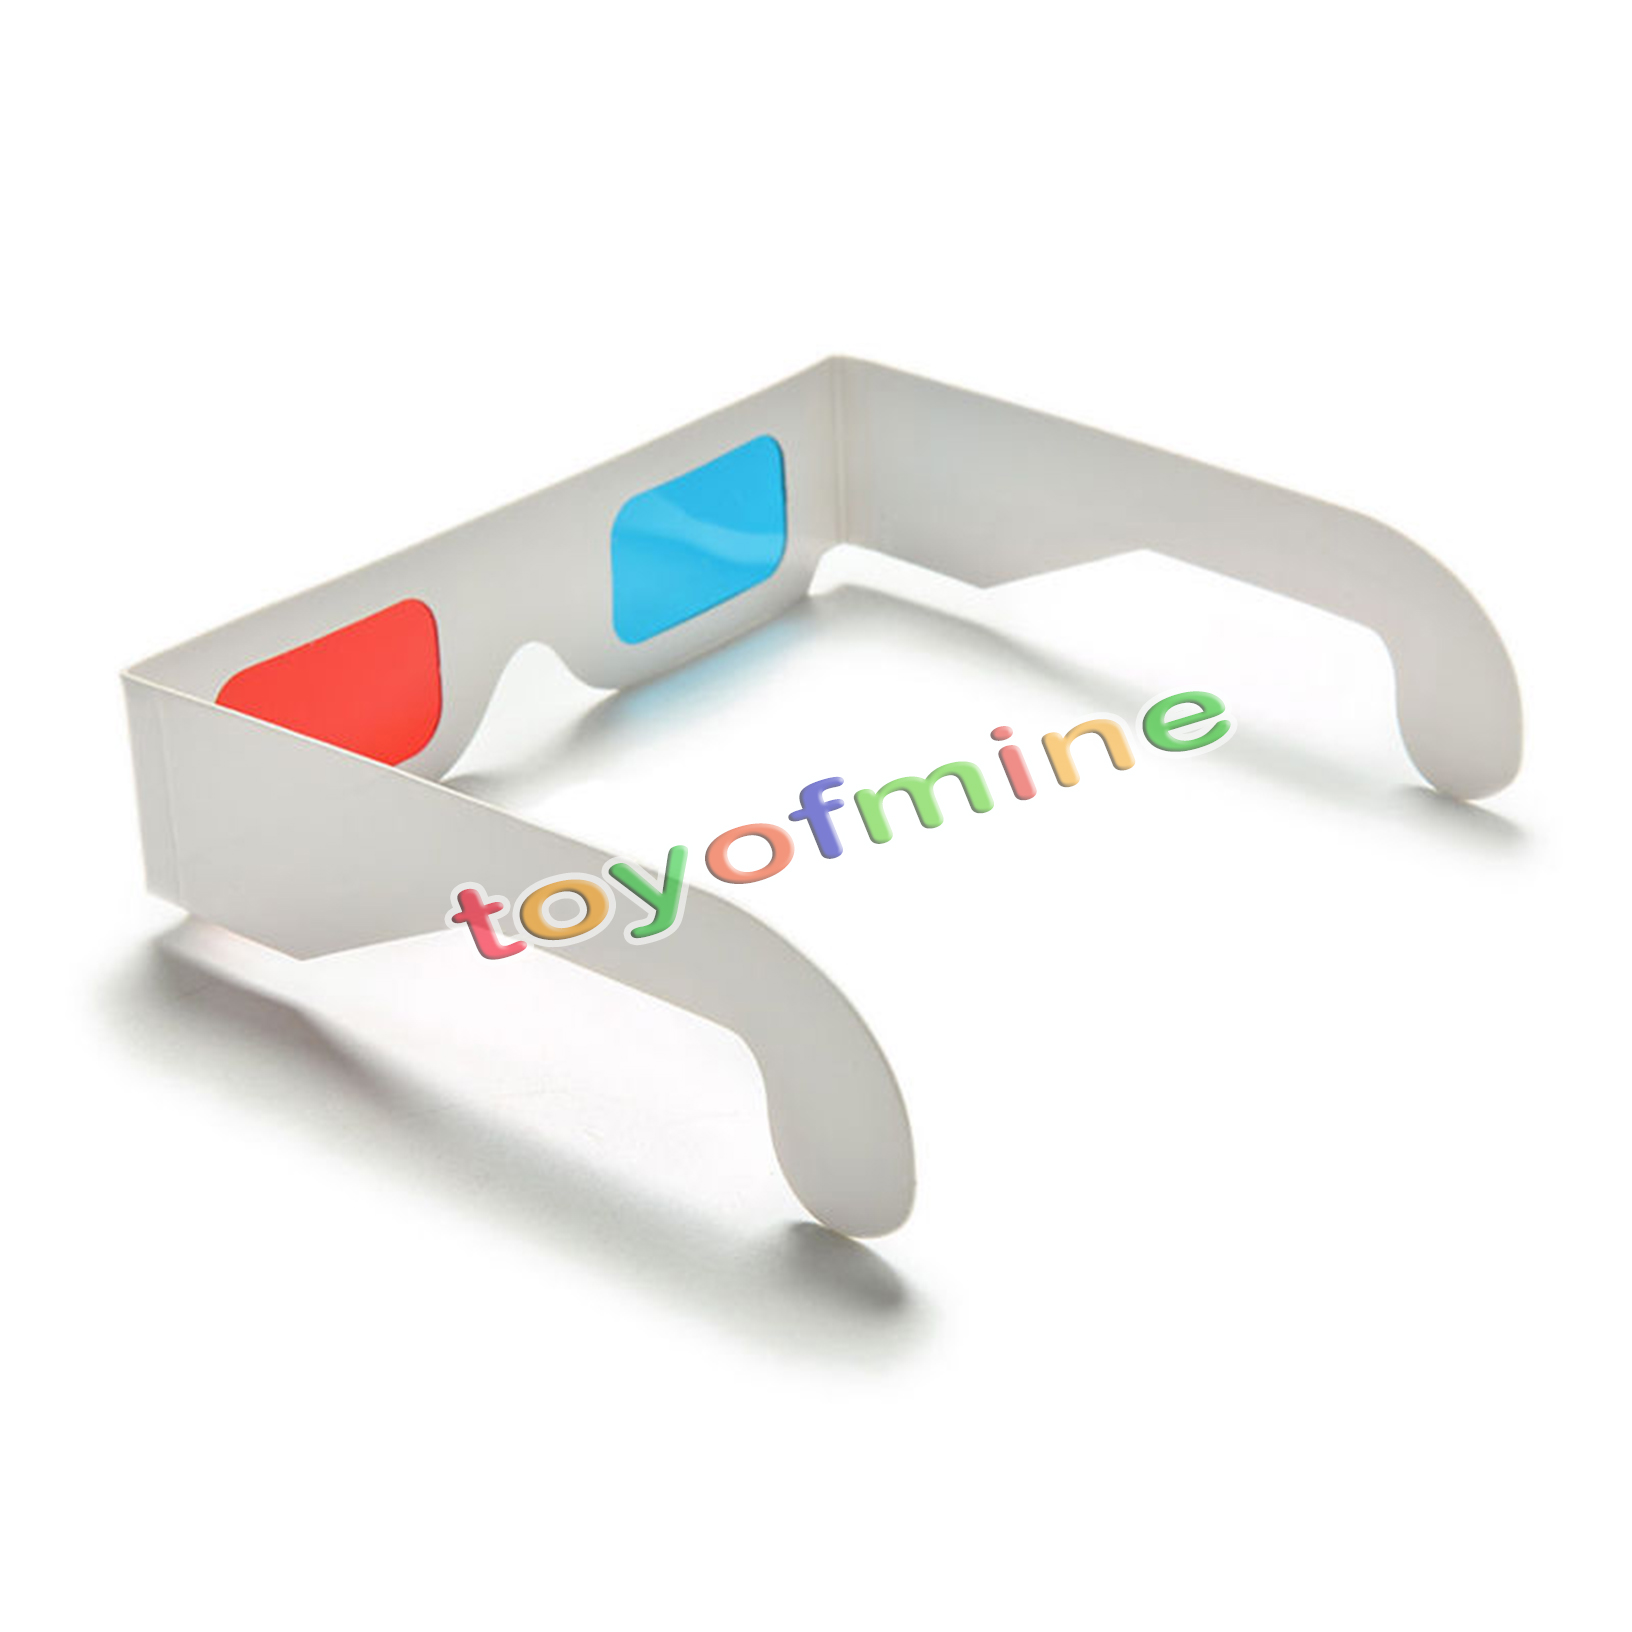 3d glasses paper Welcome to contact with us for 3d glasses, plastic 3d glasses, paper 3d glasses, 3d glasses for reald, circular polarized 3d glasses or other 3d glasses products we have 9 years professional 3d glasses prodcution experiences and we can produce all kinds of 3d glasses with good quality and best price.